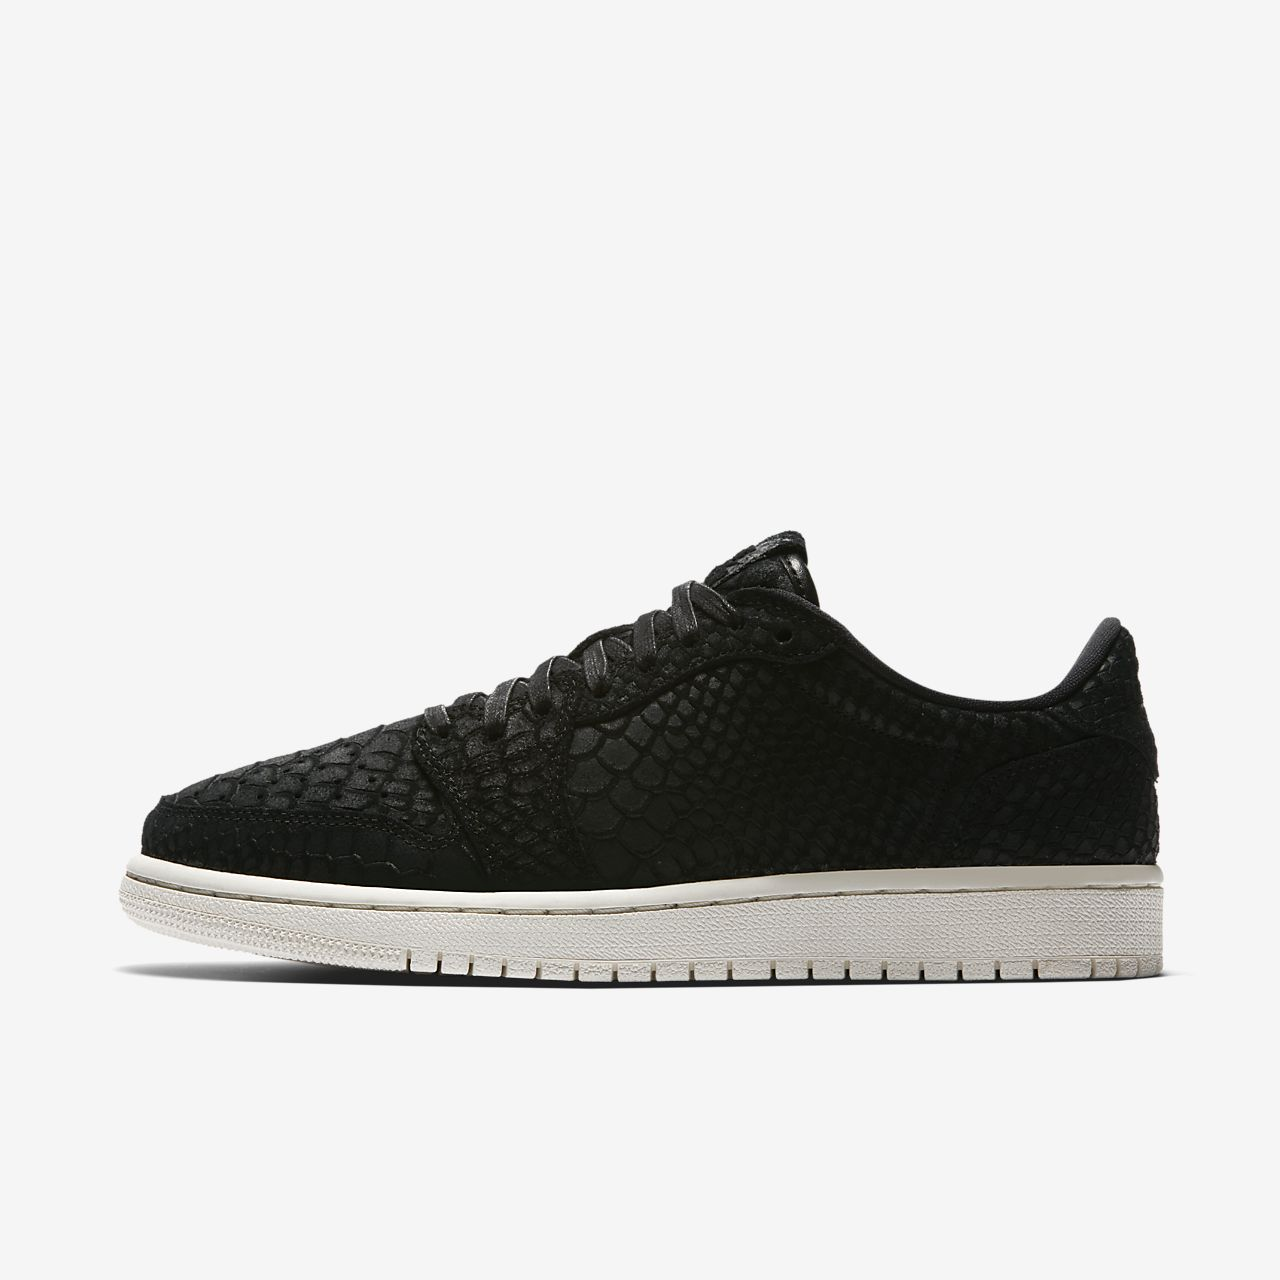 nike shoes jordan 1 nz